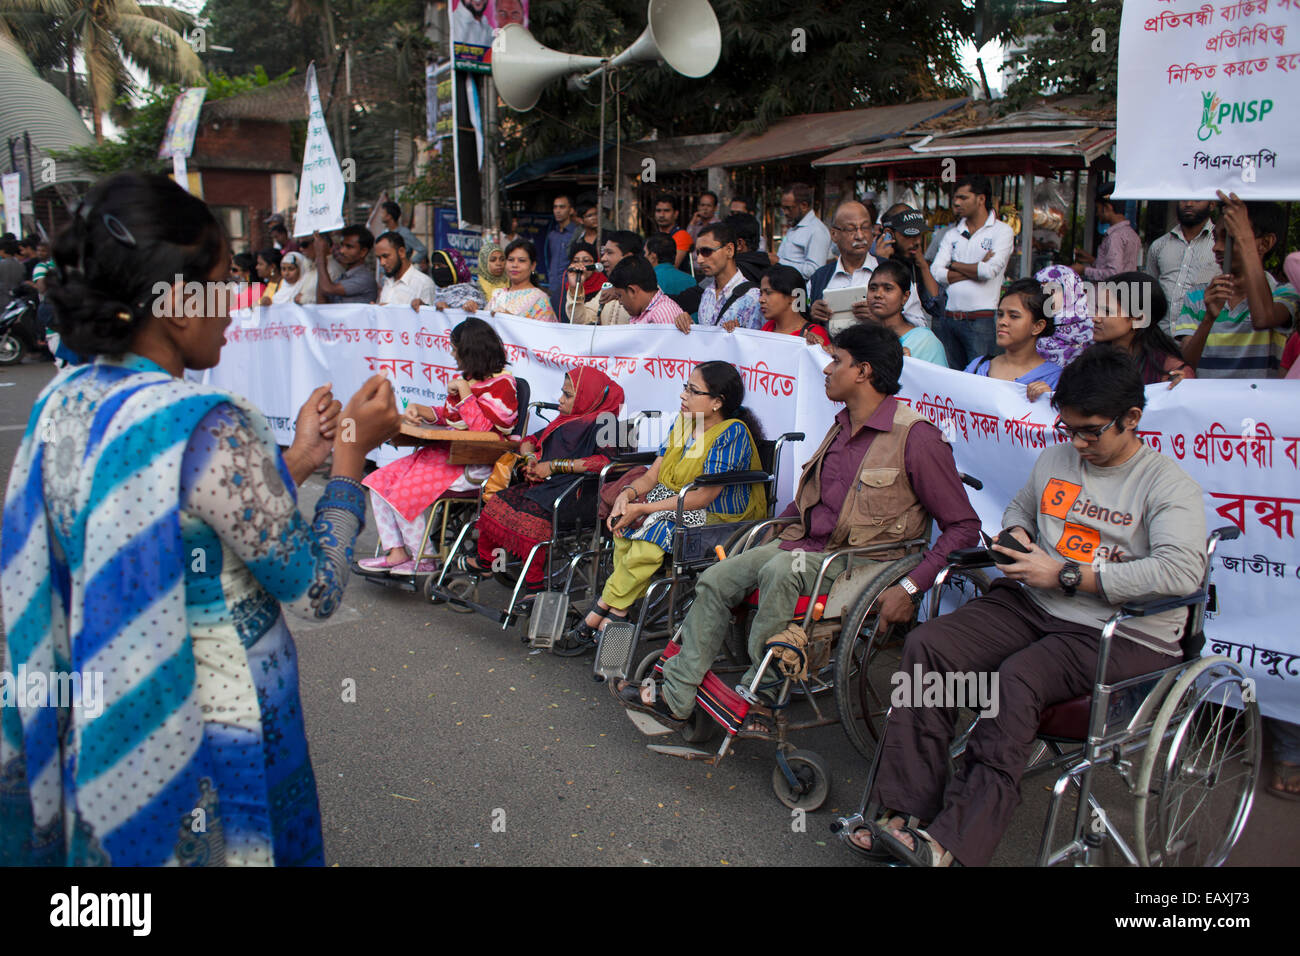 Dhaka, Bangladesh. 21st Nov, 2014. Disable citizen in gathered and made human chain in front of Press CLub Dhaka - Stock Image